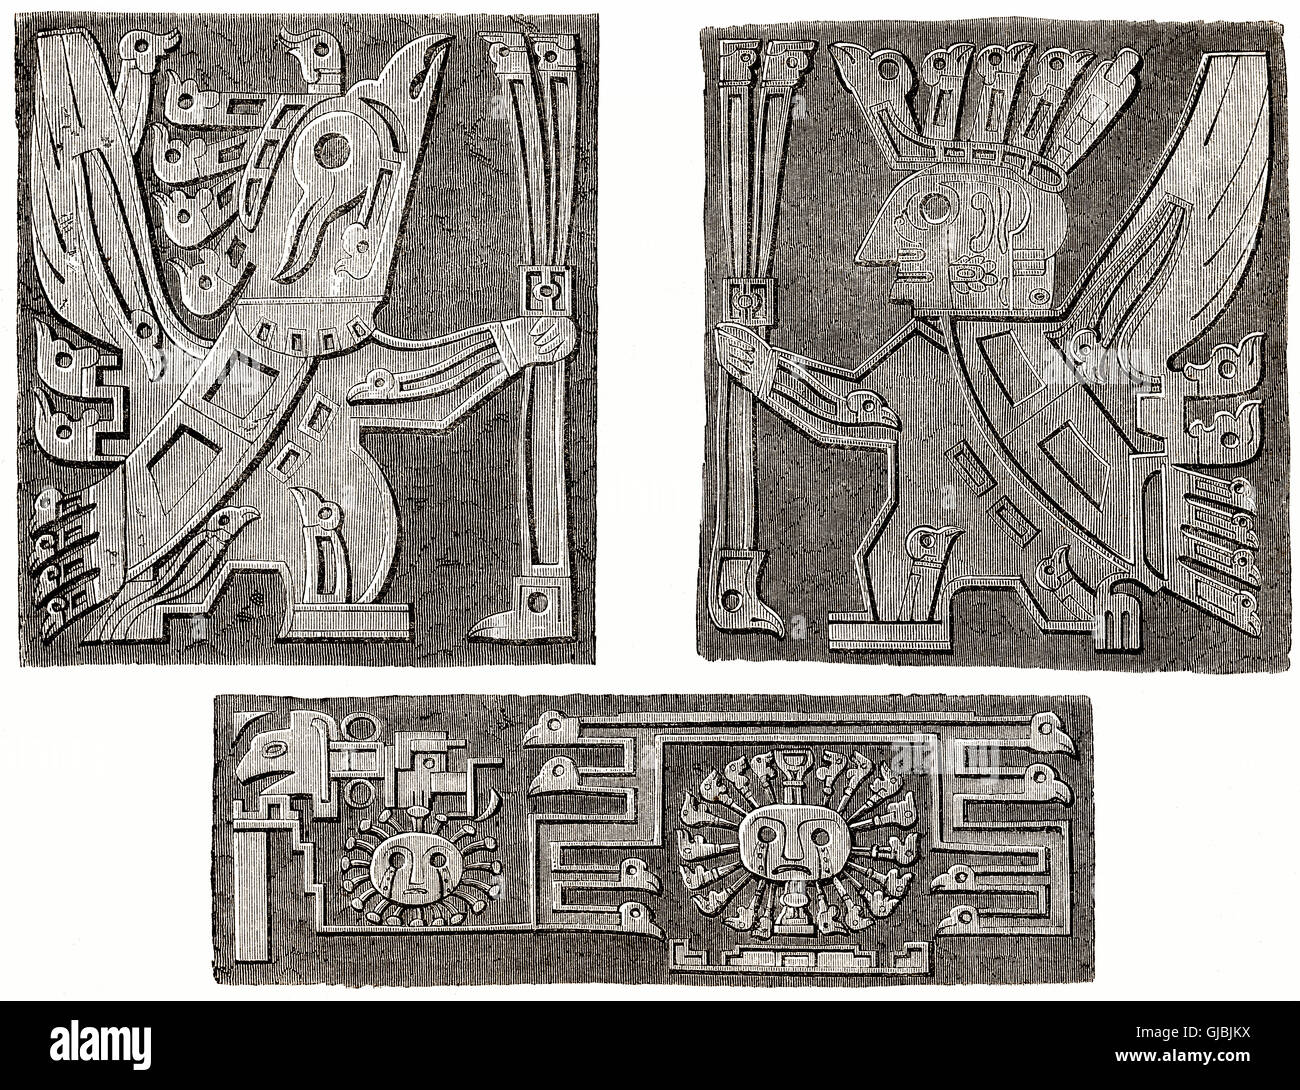 Figures in Tiwanaku, a Pre-Columbian archaeological site in western Bolivia - Stock Image